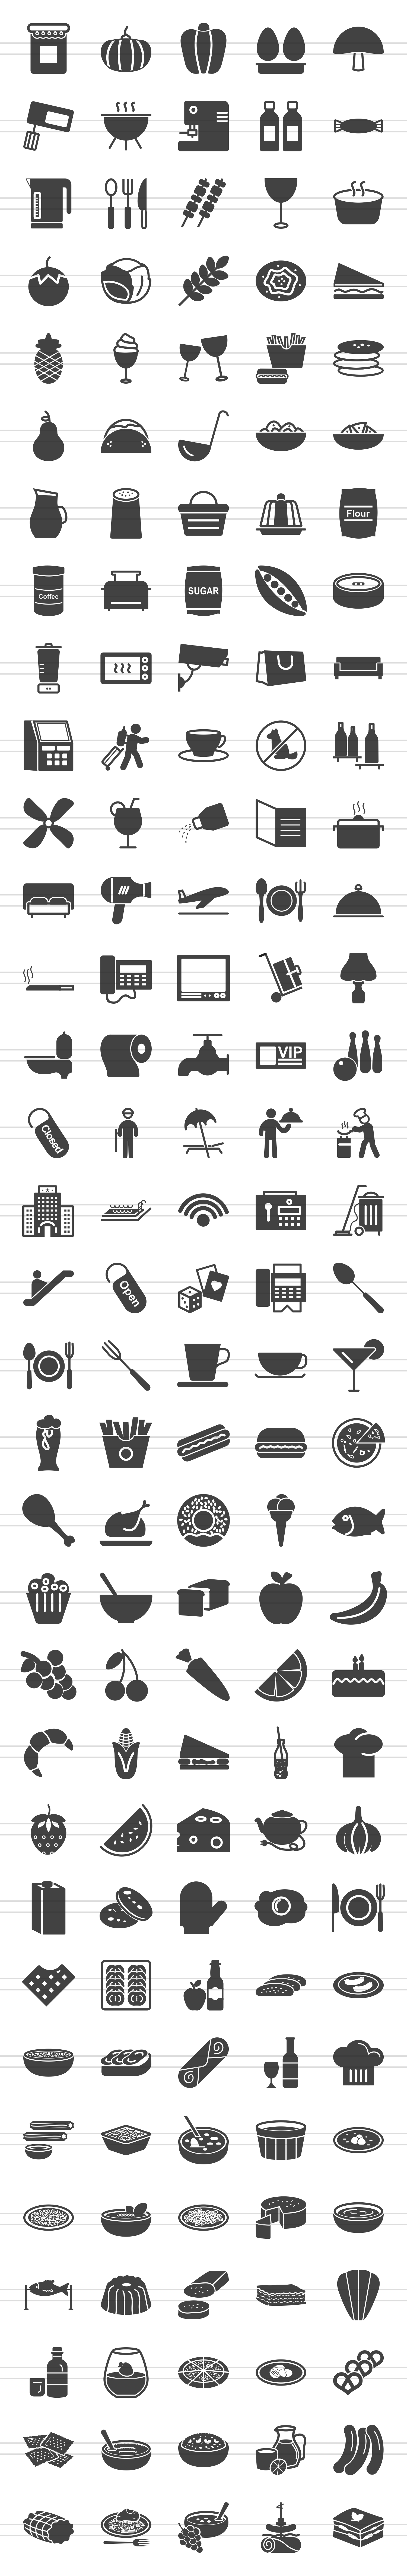 166 Restaurant & Food Glyph Icons example image 2